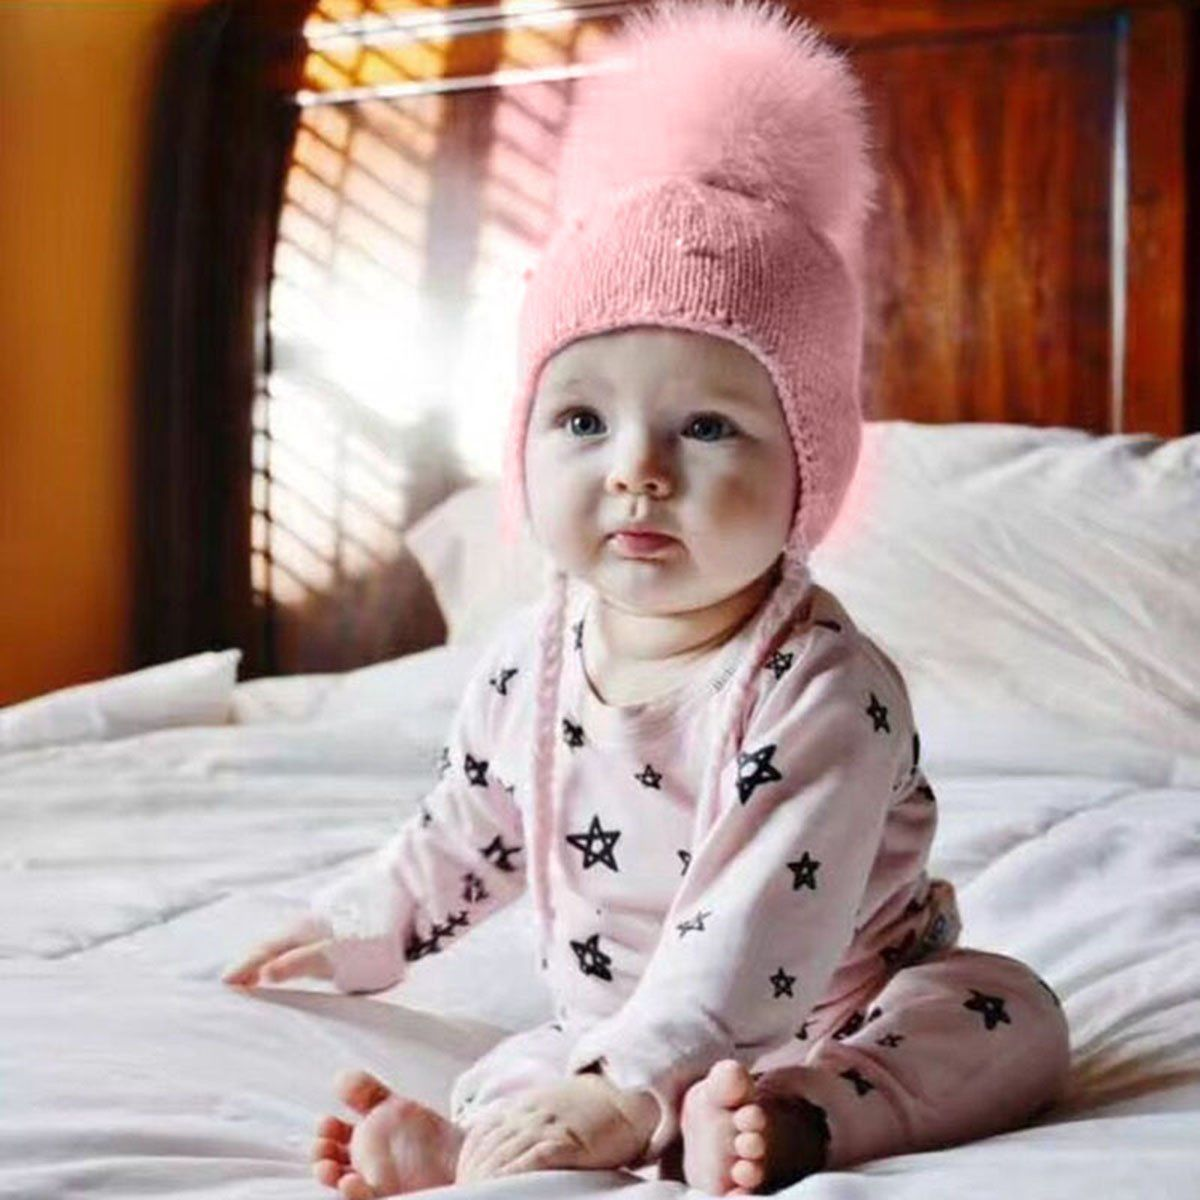 Hot Sale Solid Cute Baby Toddler Kids Girl Infant Winter Warm Pearl Crochet Knit Hat Beanie Cap  Ears Beanie Fur Pompom Cap 1-3Y